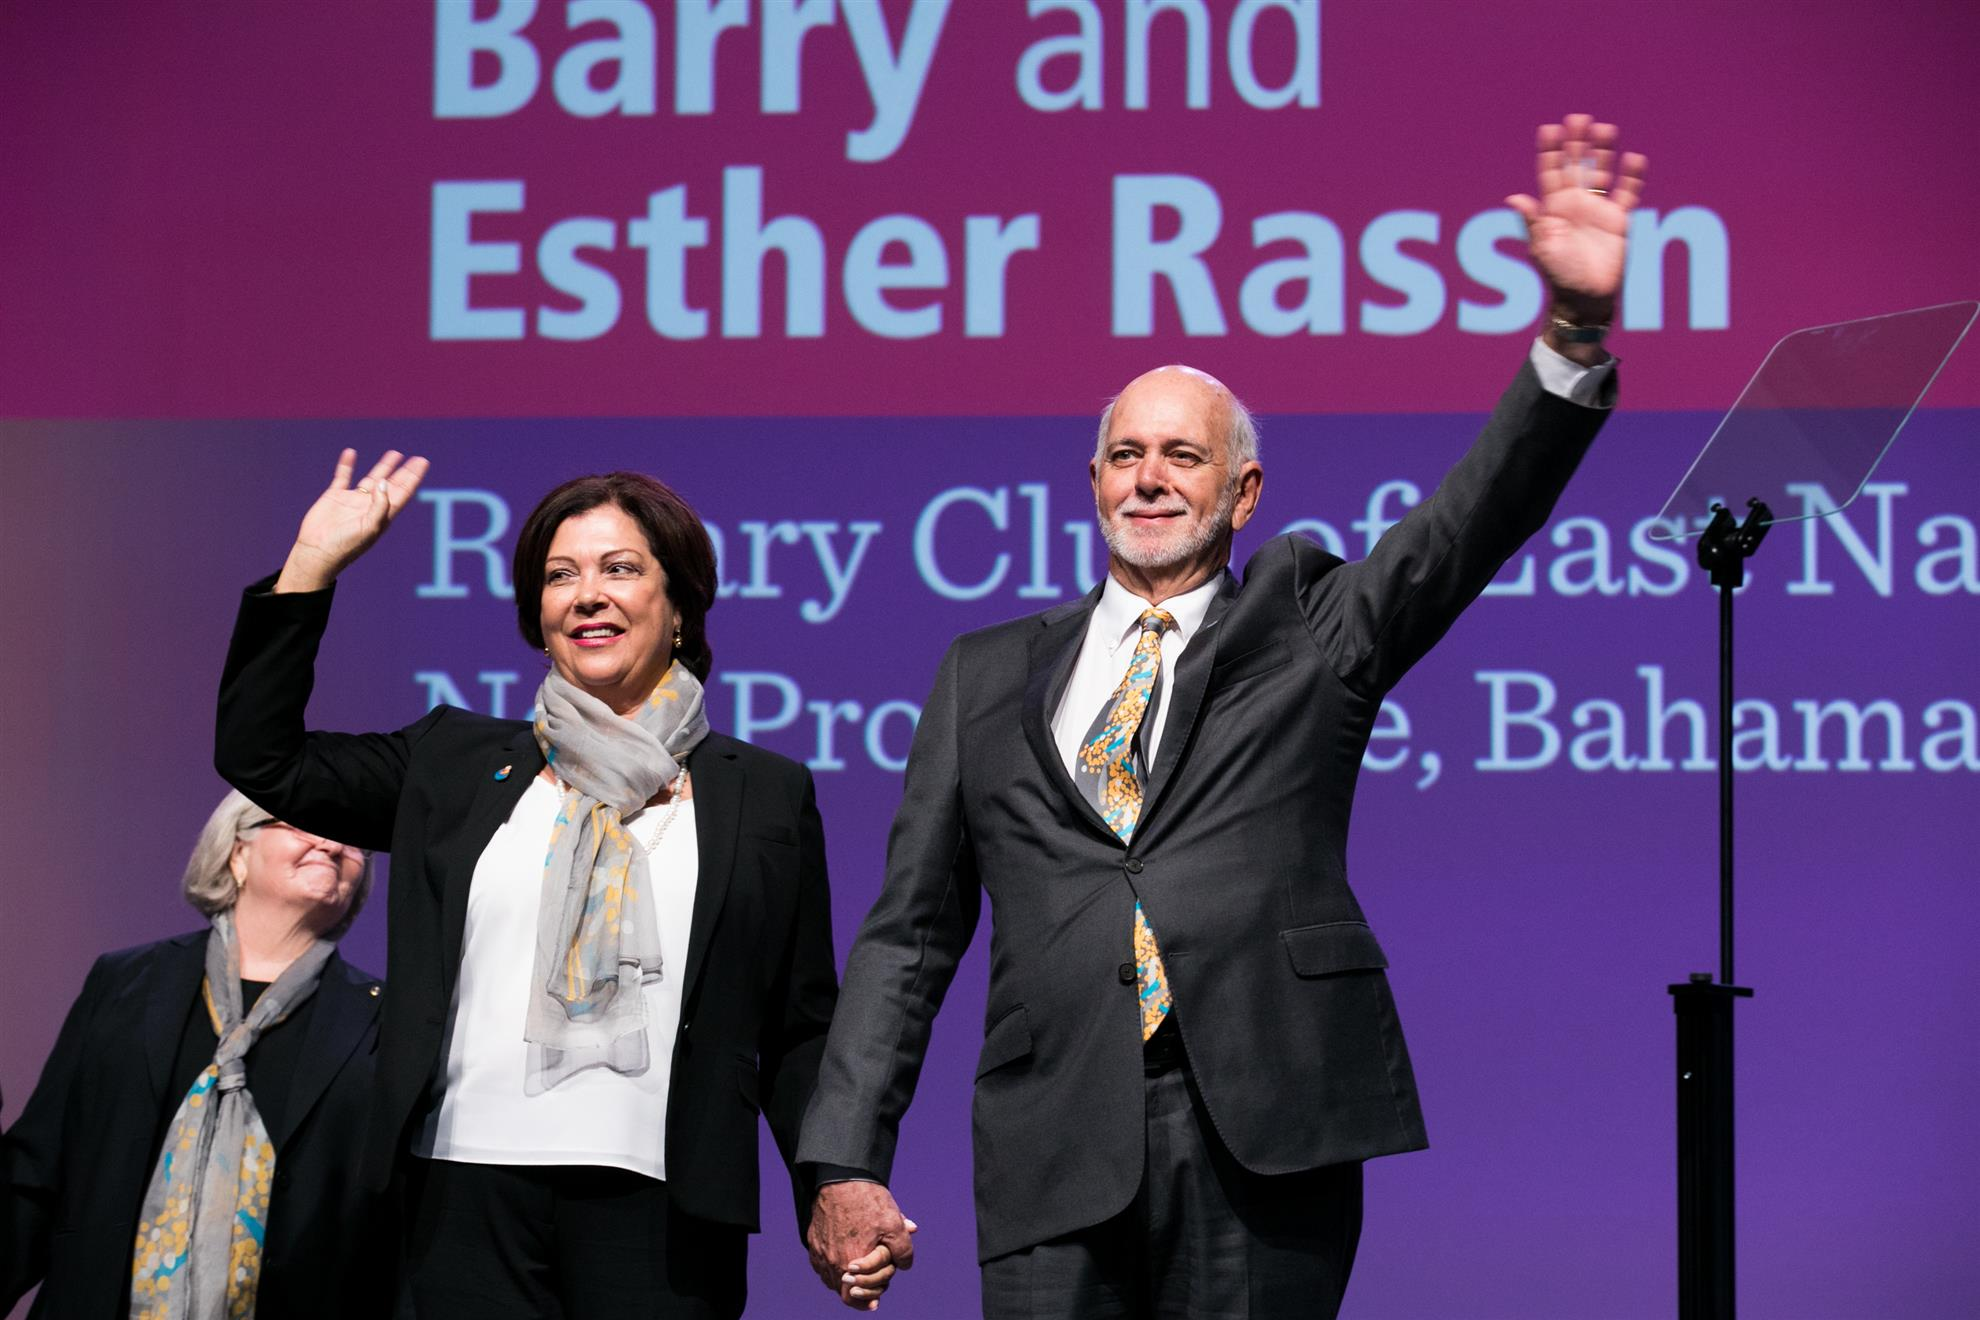 Rotary Club of East Nassau, Home Club of Rotary International President, Barry Rassin 2018 - 2019 and his Partner, Esther Rassin.